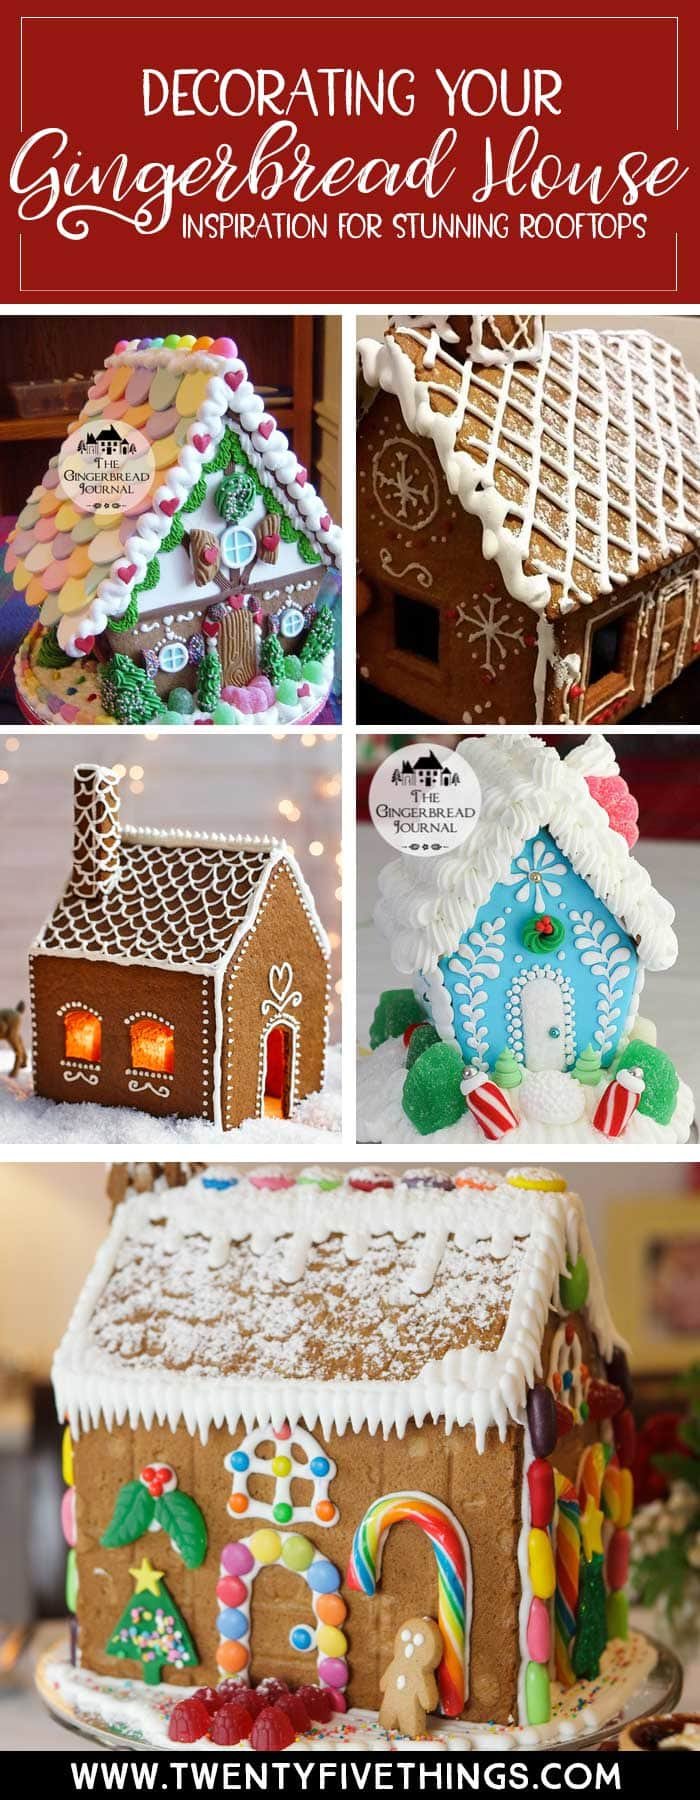 Create a no-fail gingerbread roof with these rooftop gingerbread house ideas and gingerbread house tips and tricks. Everything you need to know to make a stunning gingerbread house every time. #GingerbreadHouse #DIYChristmas #HolidayTraditions